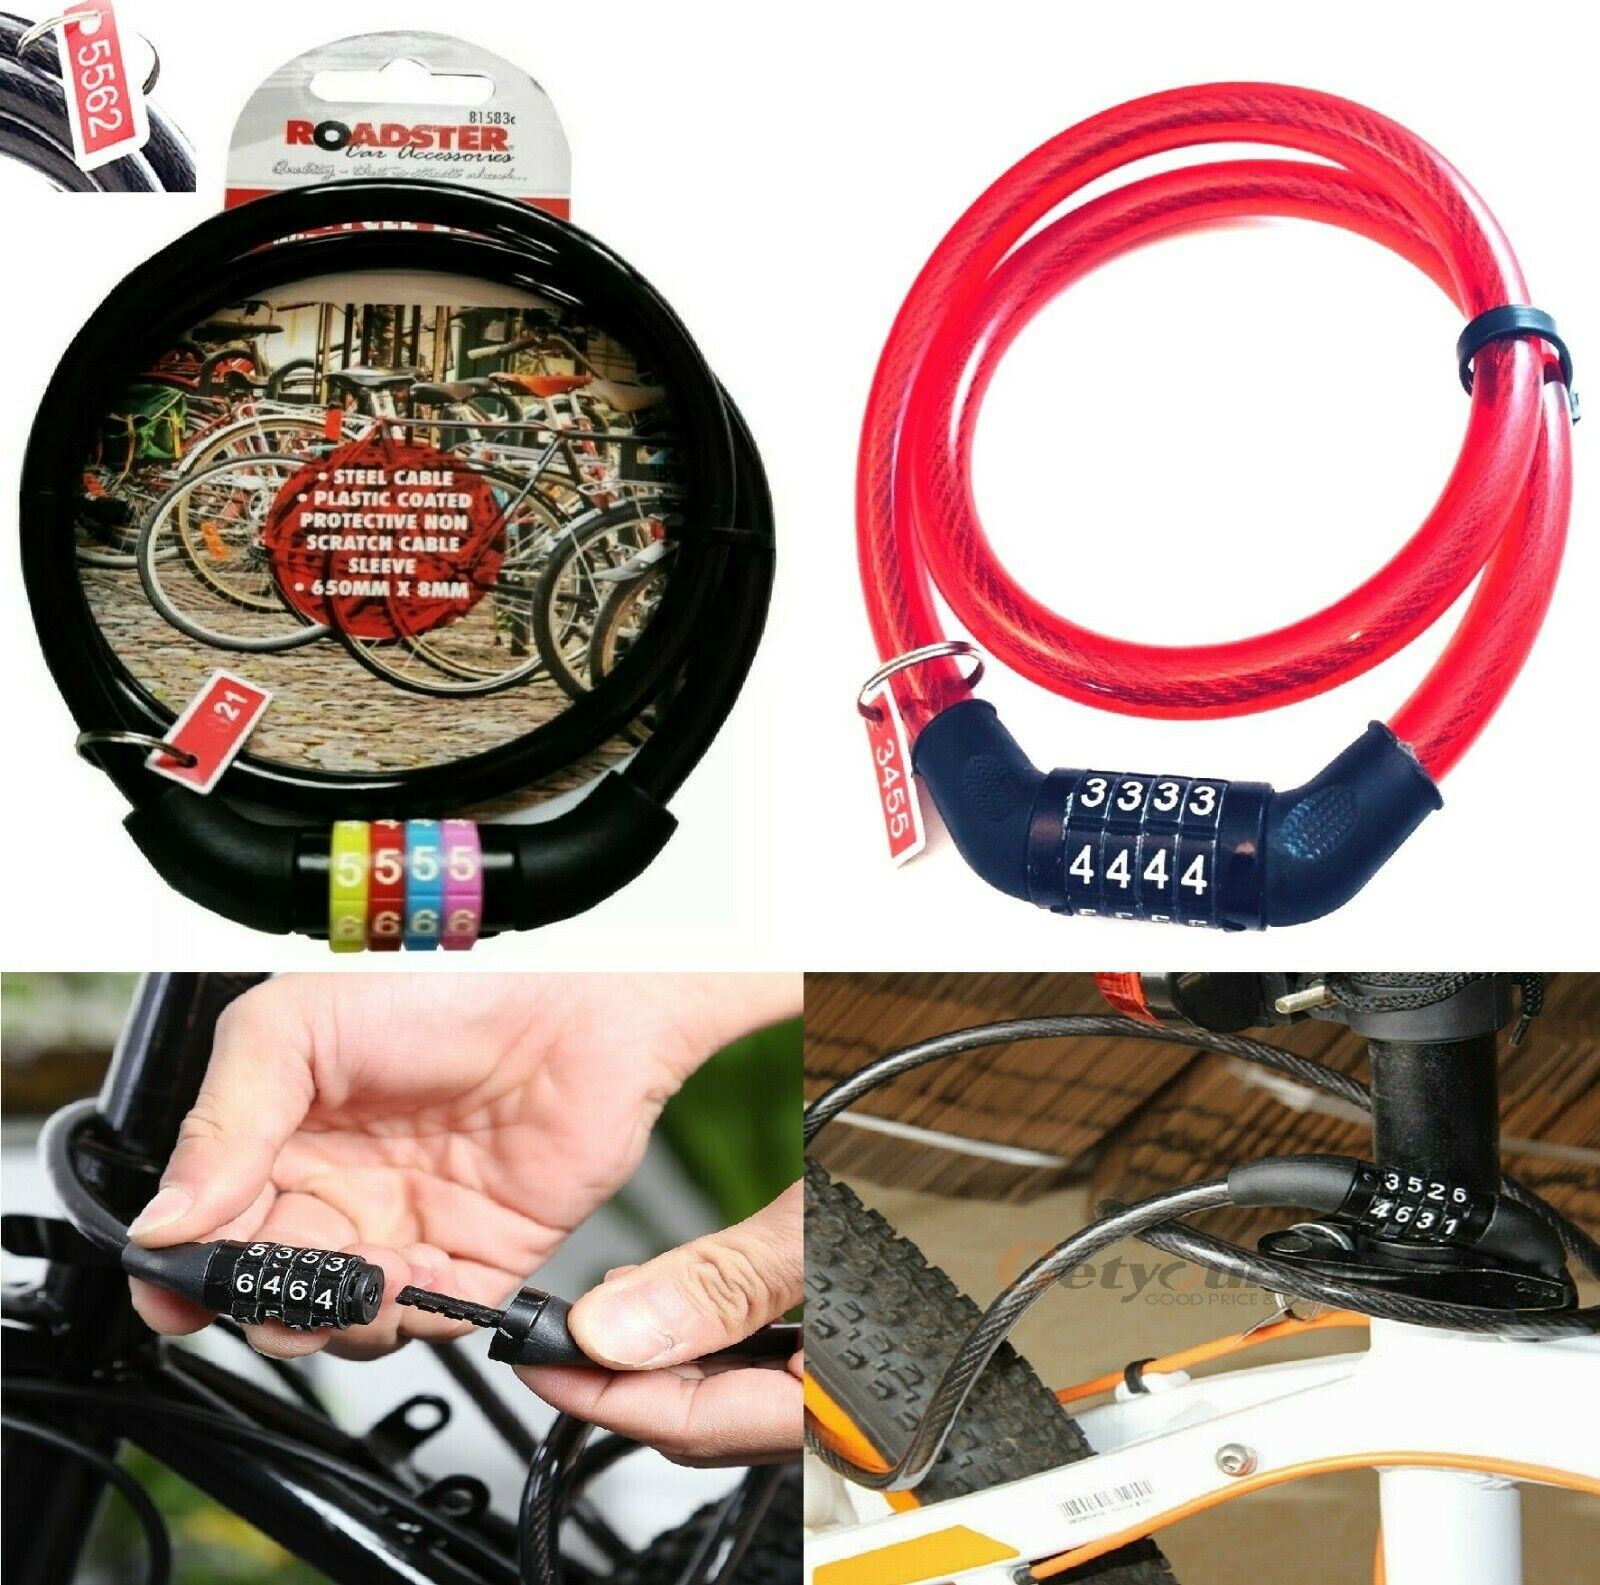 COMBINATION STEEL CABLE LOCK CYCLE MOUNTAIN BIKE BICYCLE 500mm x 6mm NEW